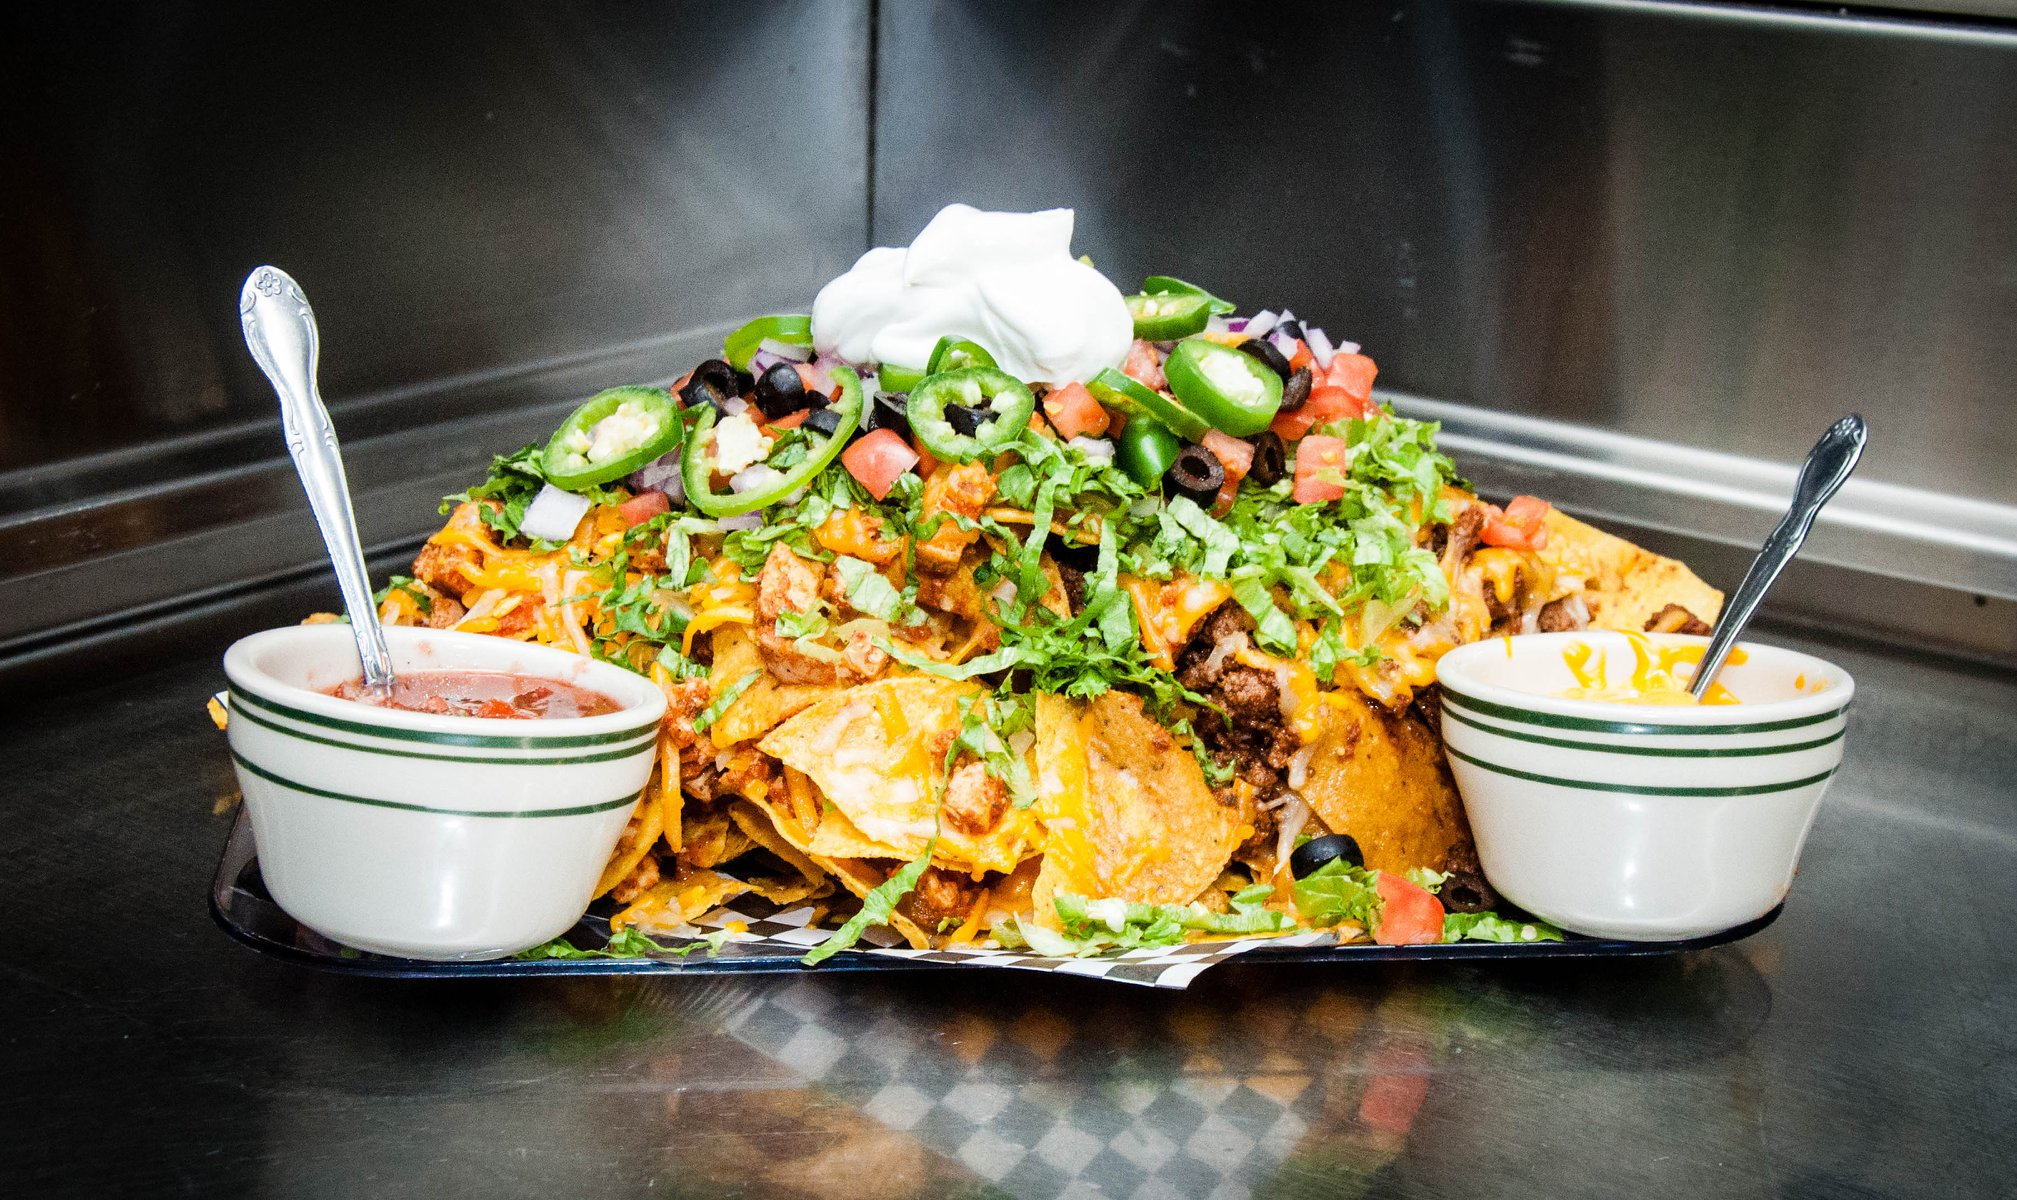 Nacho Platter with jalapenos, chopped vegetables, and dipping sauces